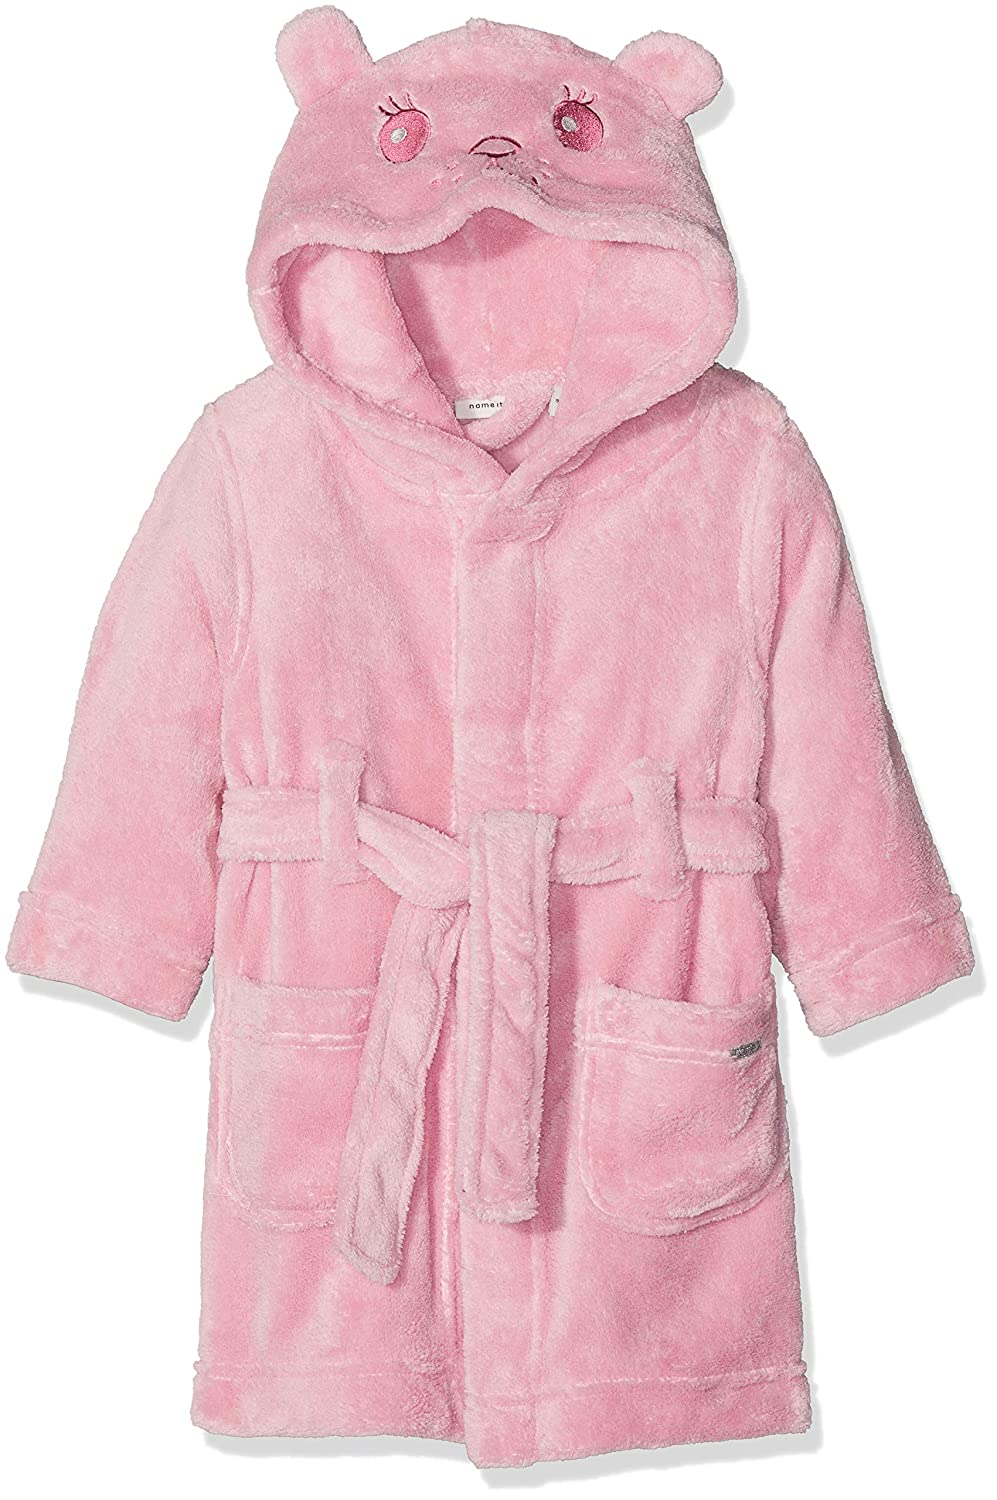 NAME IT Baby-Mä dchen Bademantel Nmfratti Bathrobe 13163895